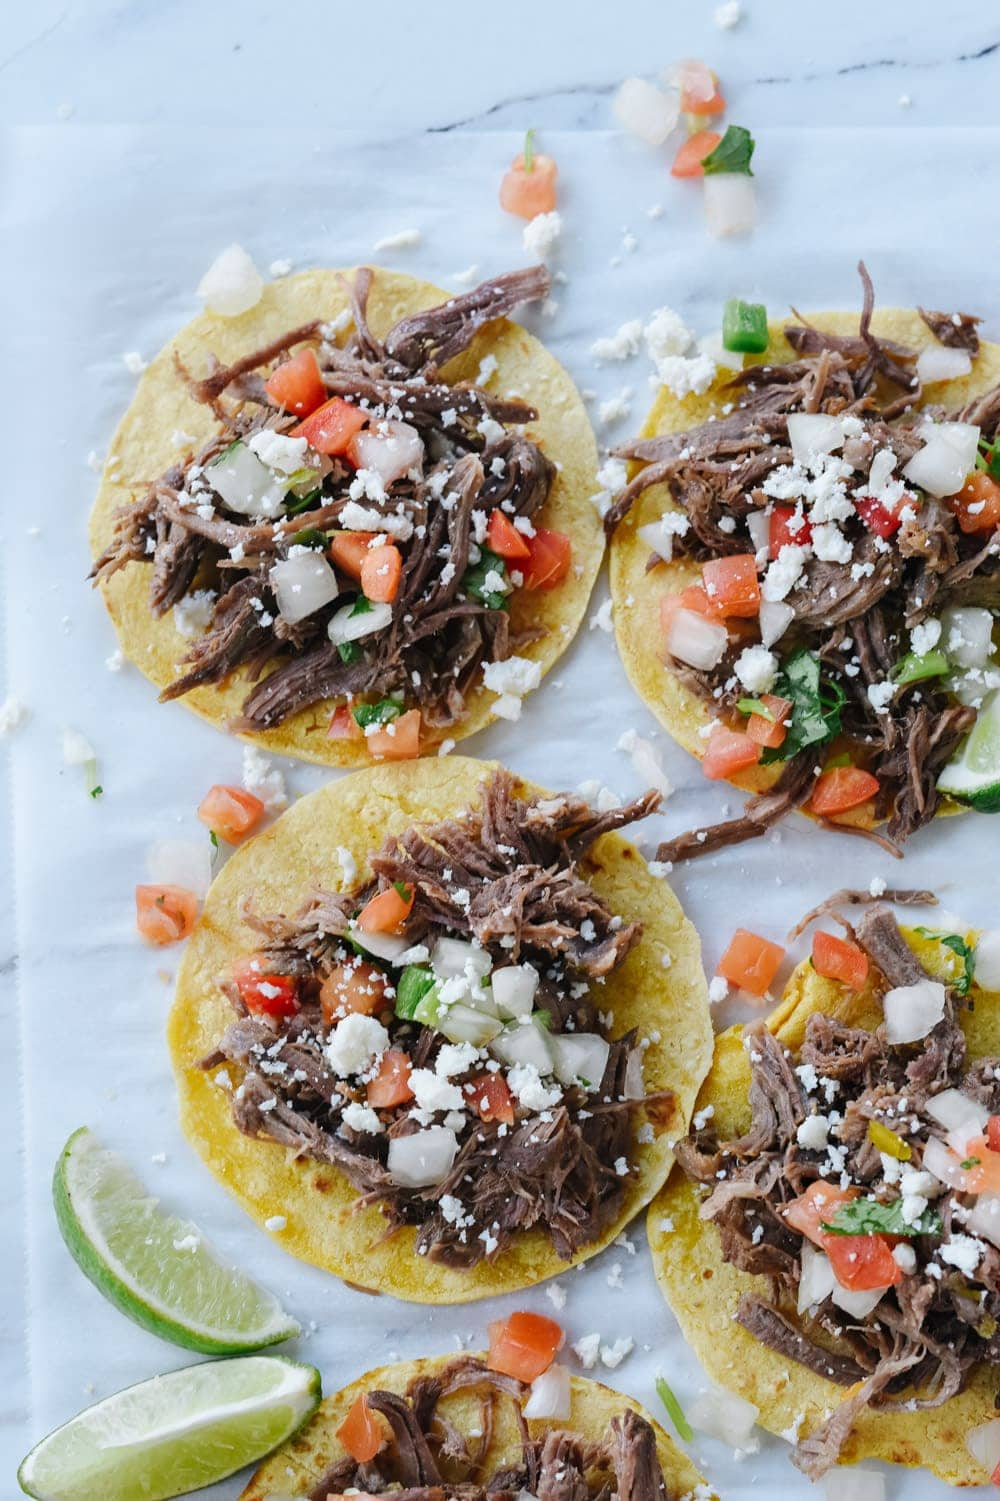 shredded beef tacos on corn tortillas